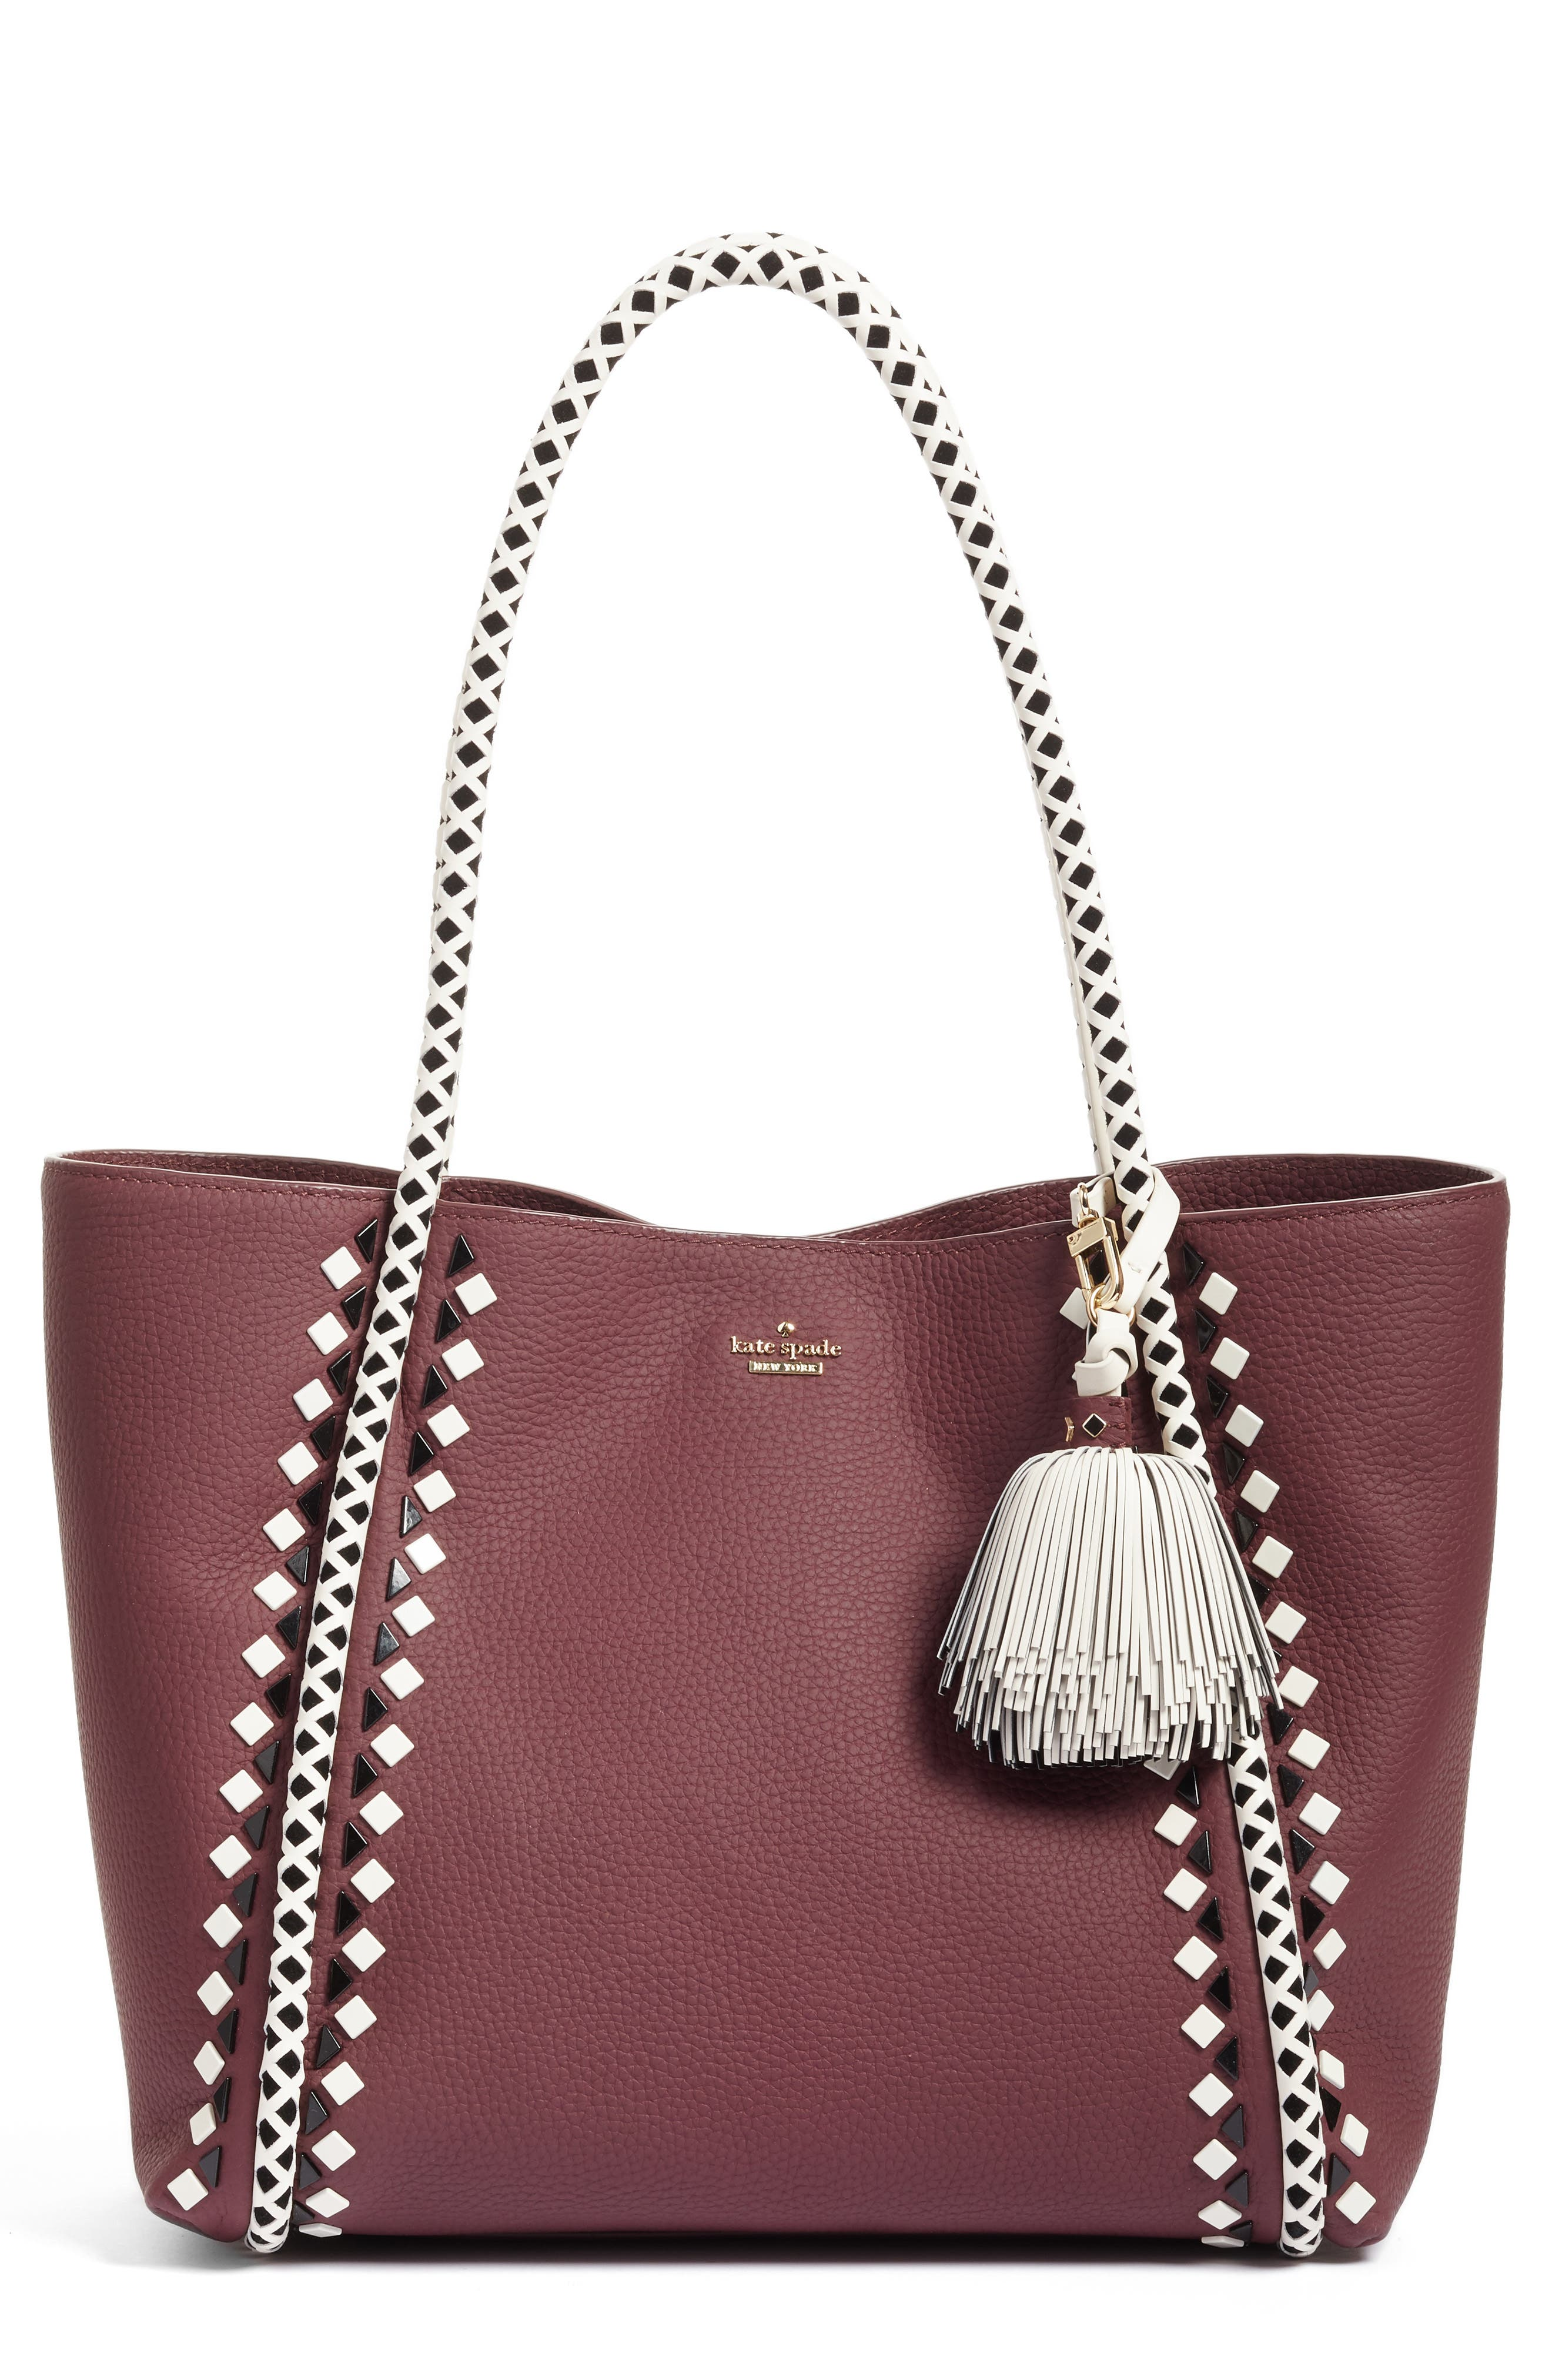 kate spade new york crown street - ronan leather tote